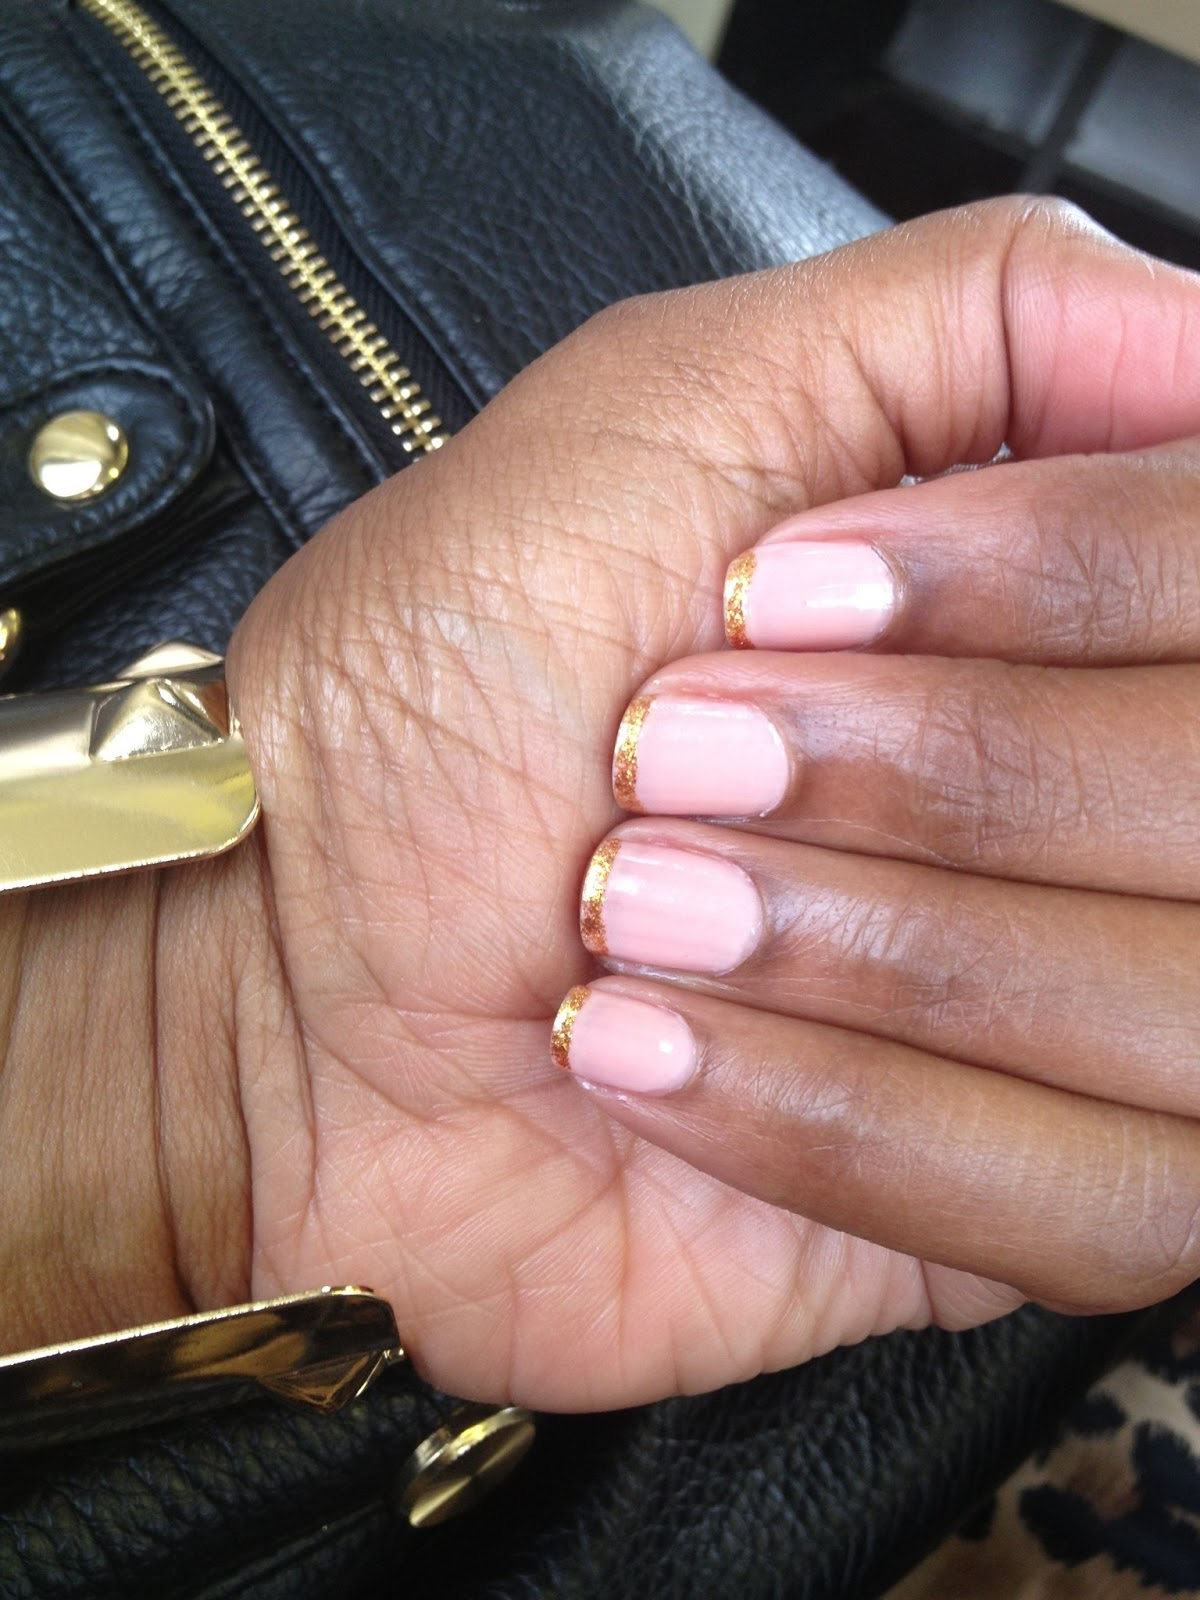 Beauty} Manicure Monday: Gold Tipped French Manicure • Curvatude